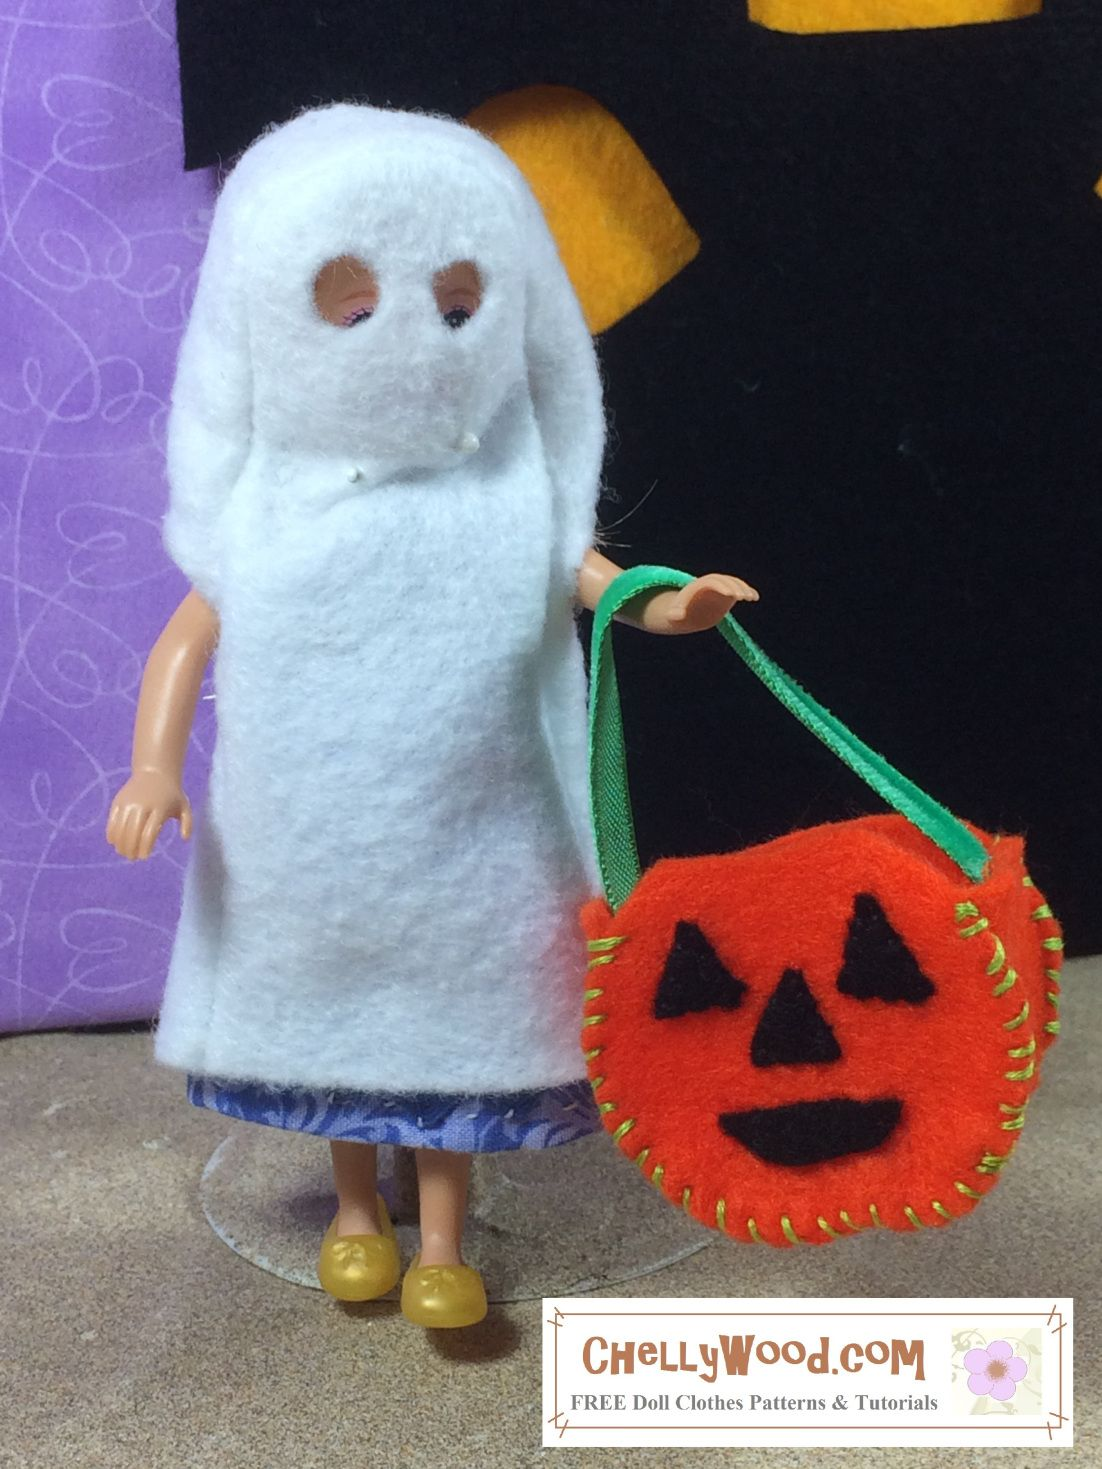 Visit chellywood for free printable sewing patterns for dolls visit chellywood for free printable sewing patterns for dolls of many shapes and sizes image shows a polly pocket doll wearing a hand made ghost jeuxipadfo Gallery